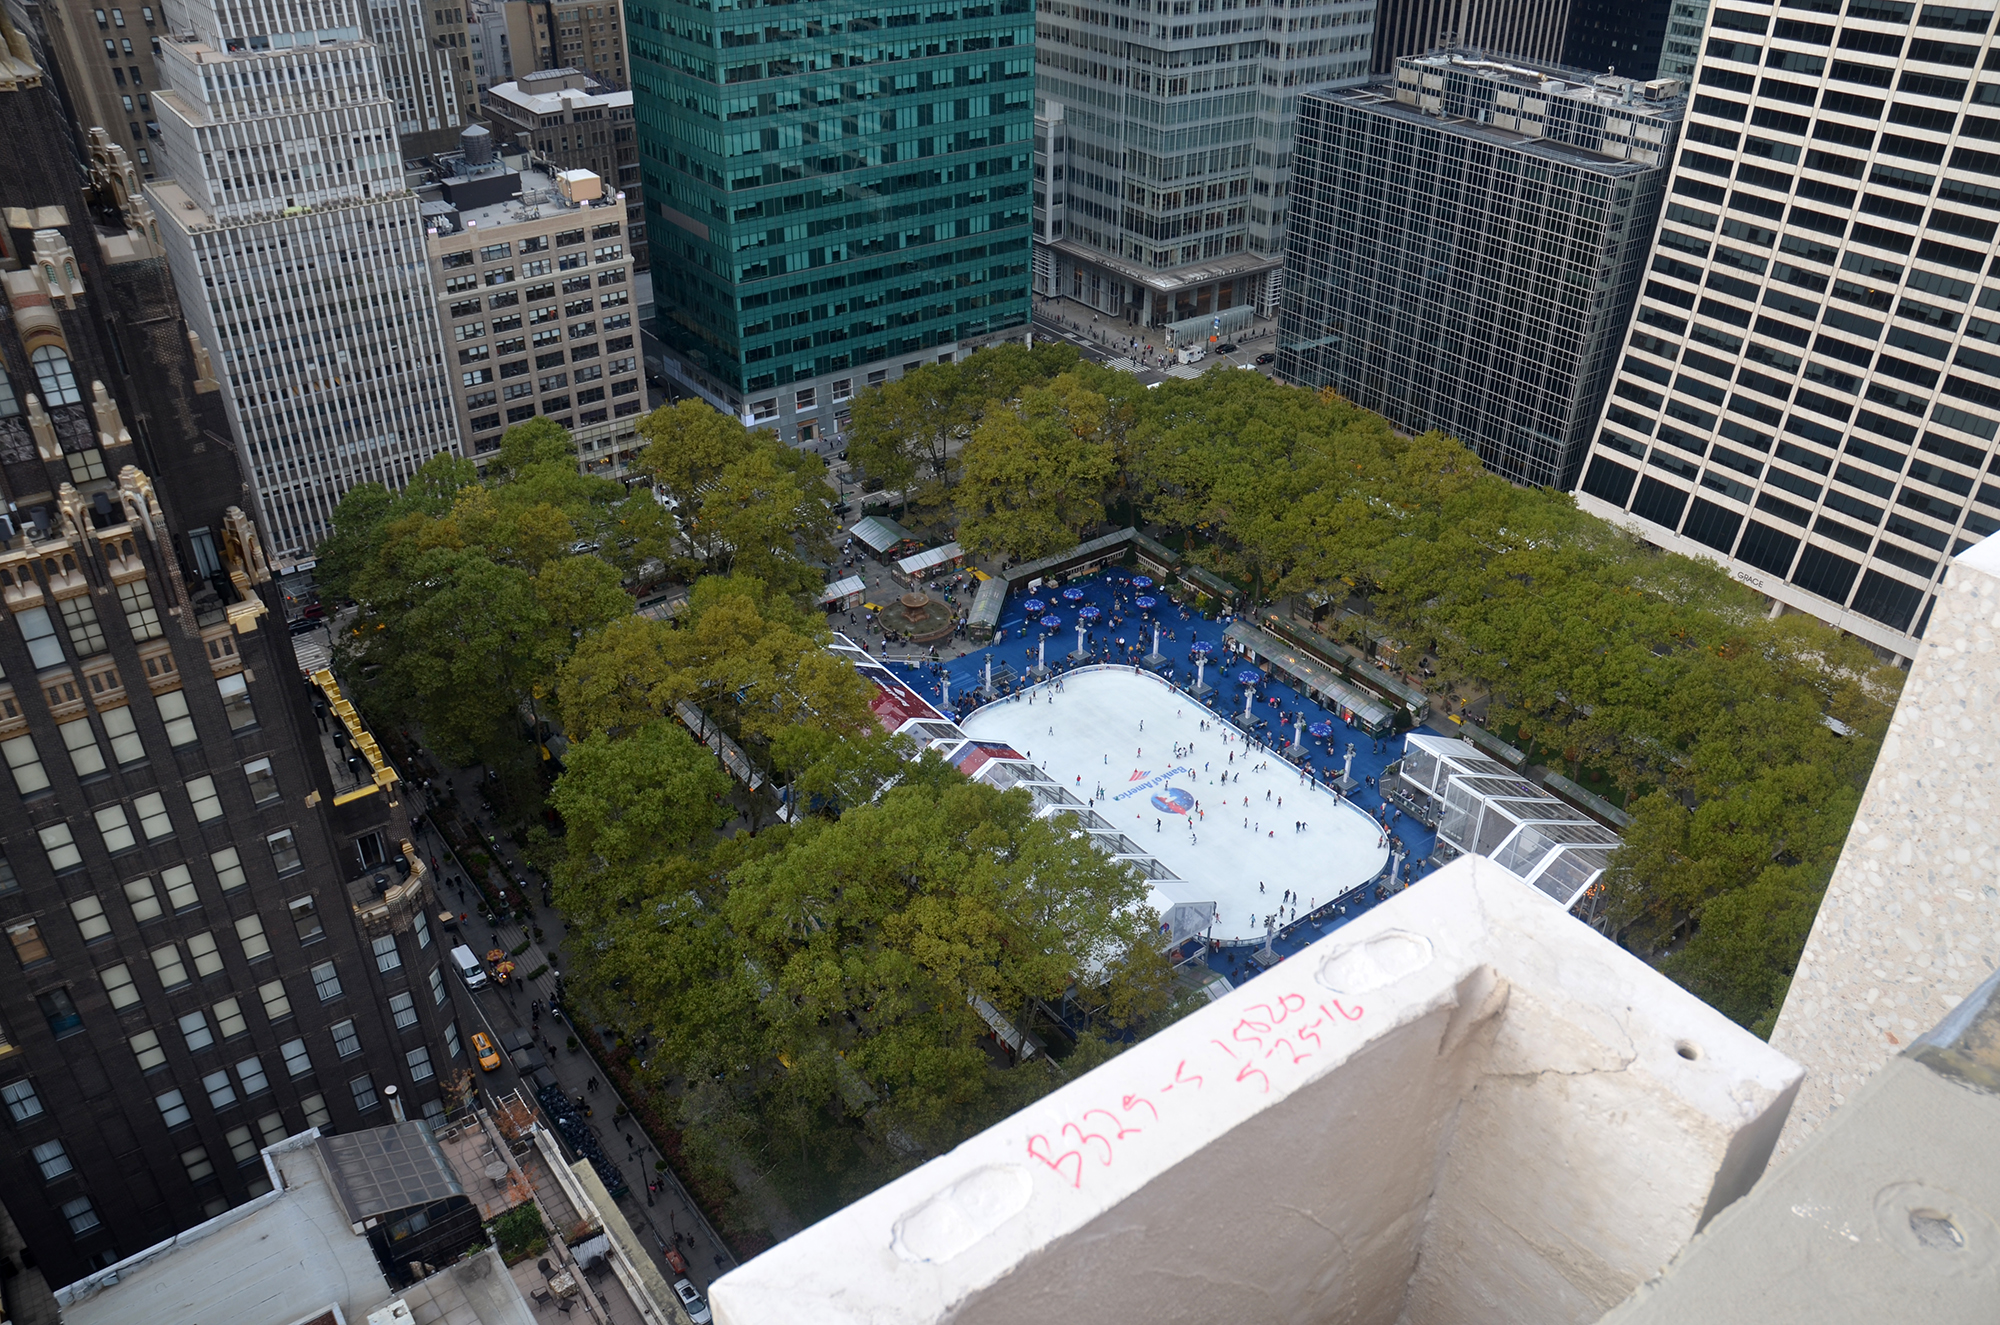 Bryant Park as seen from The Bryant